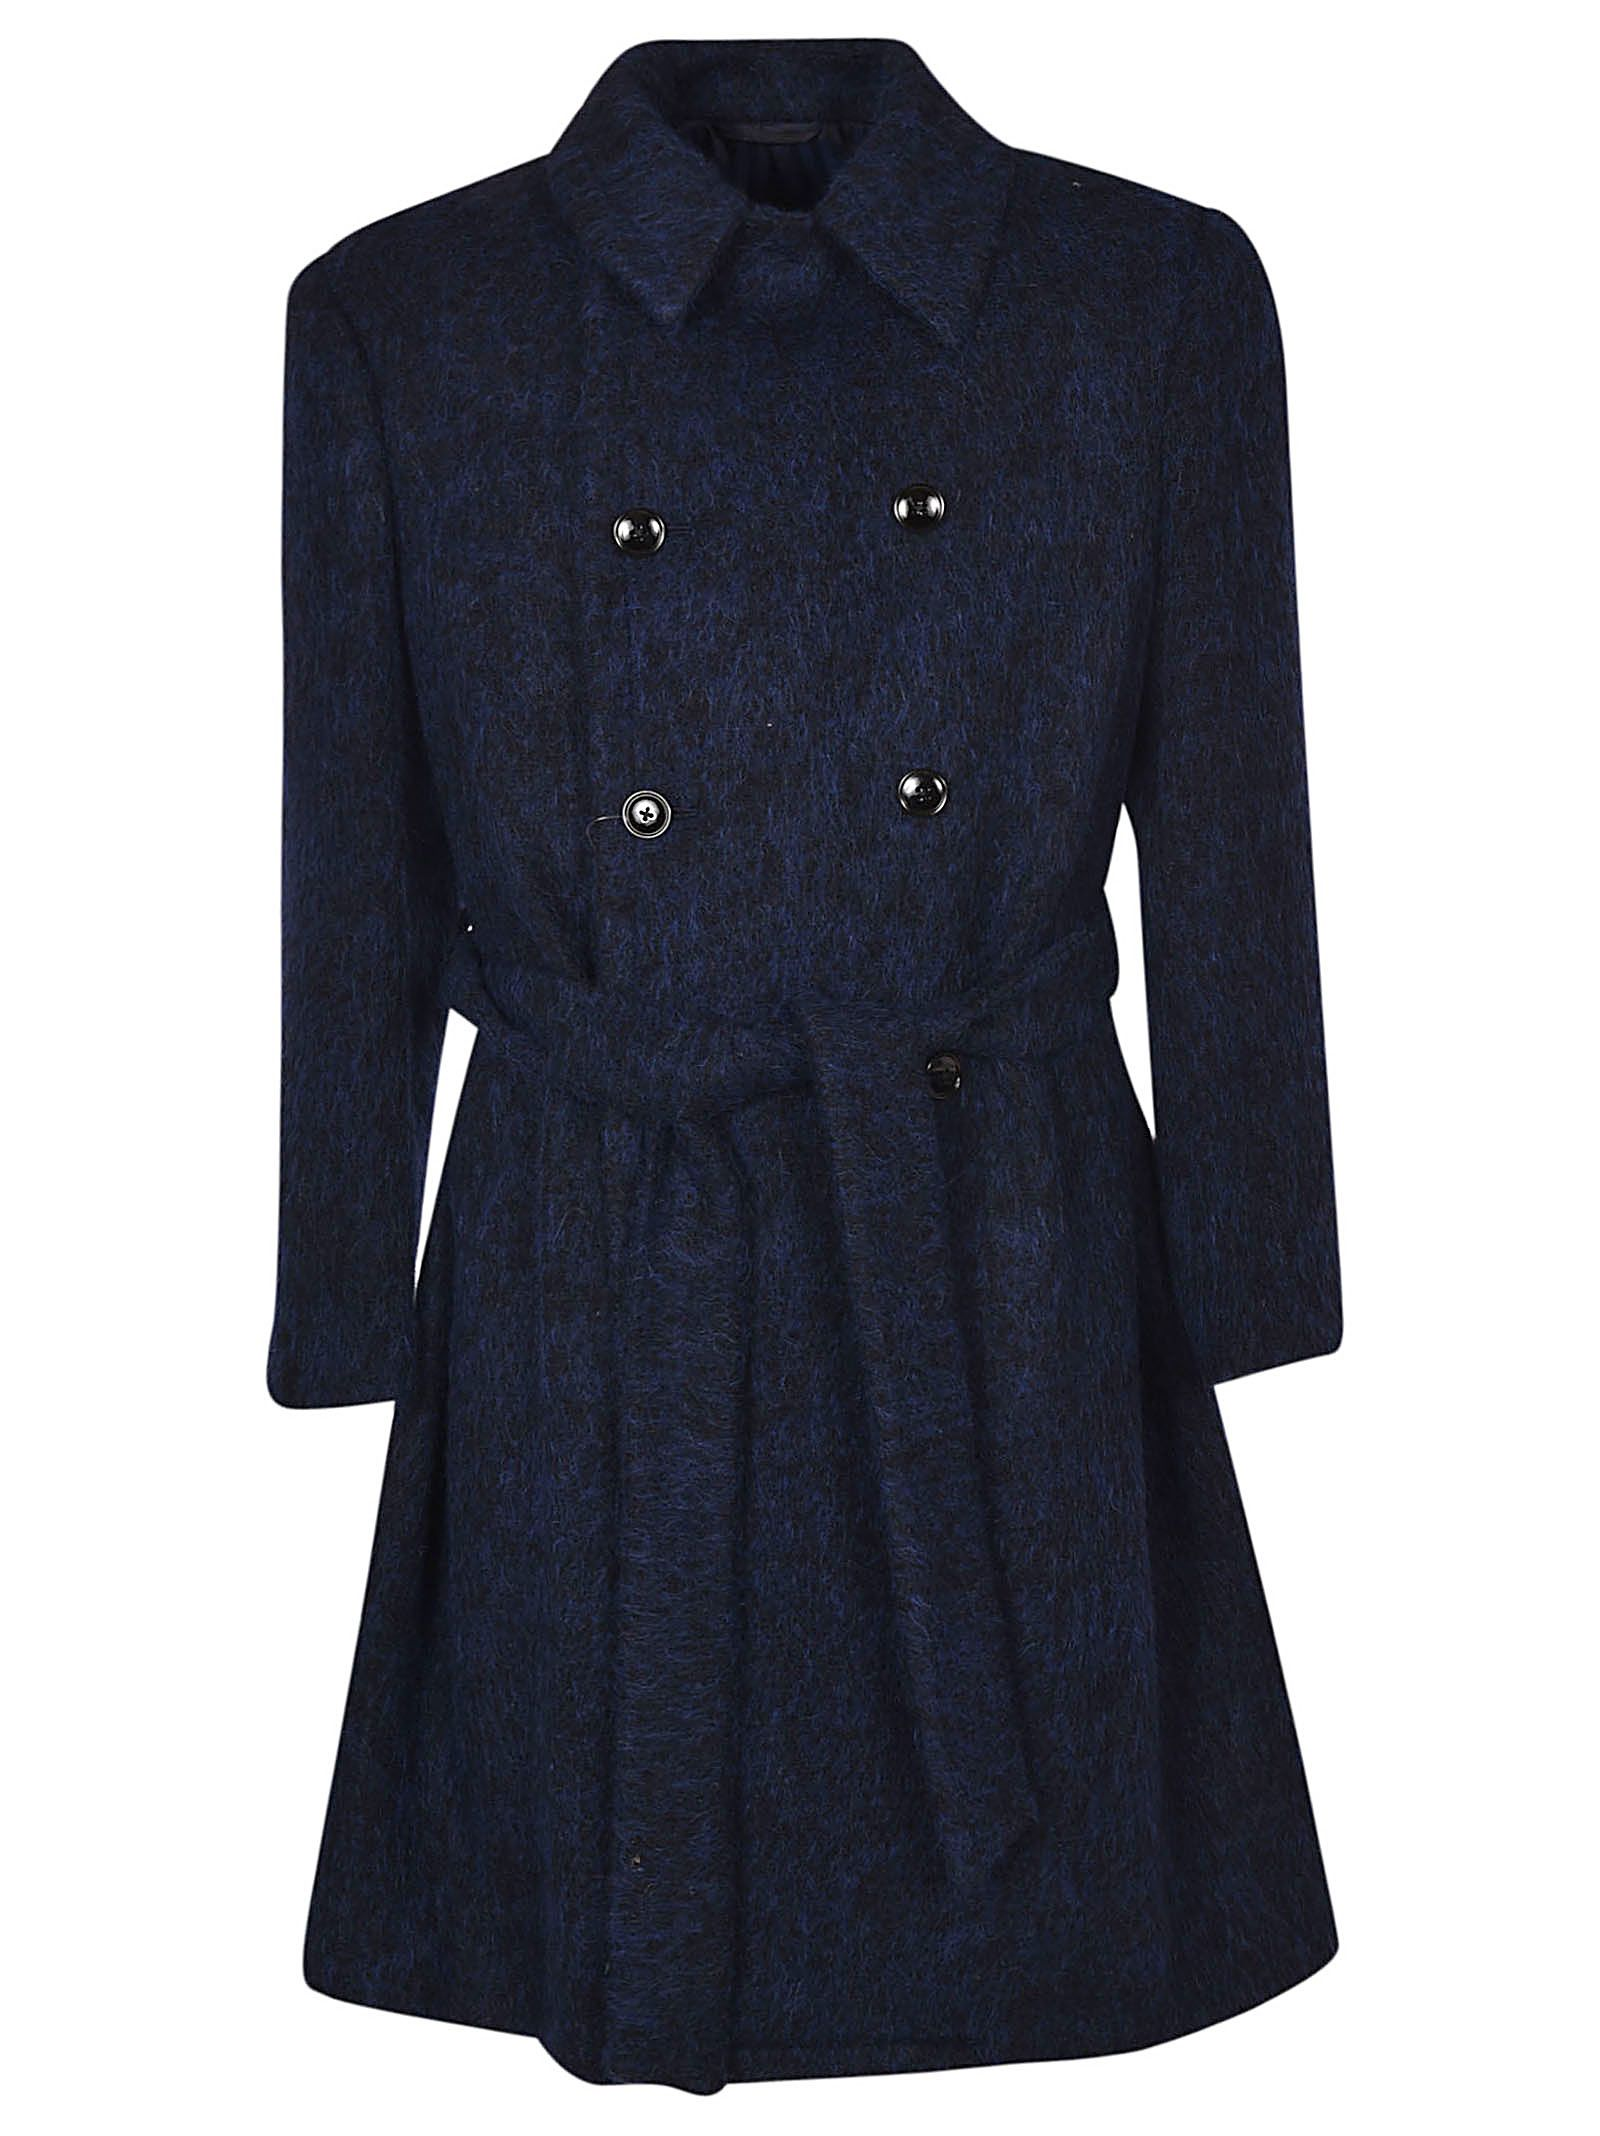 MASSIMO PIOMBO Belted Double Breasted Coat in 08U